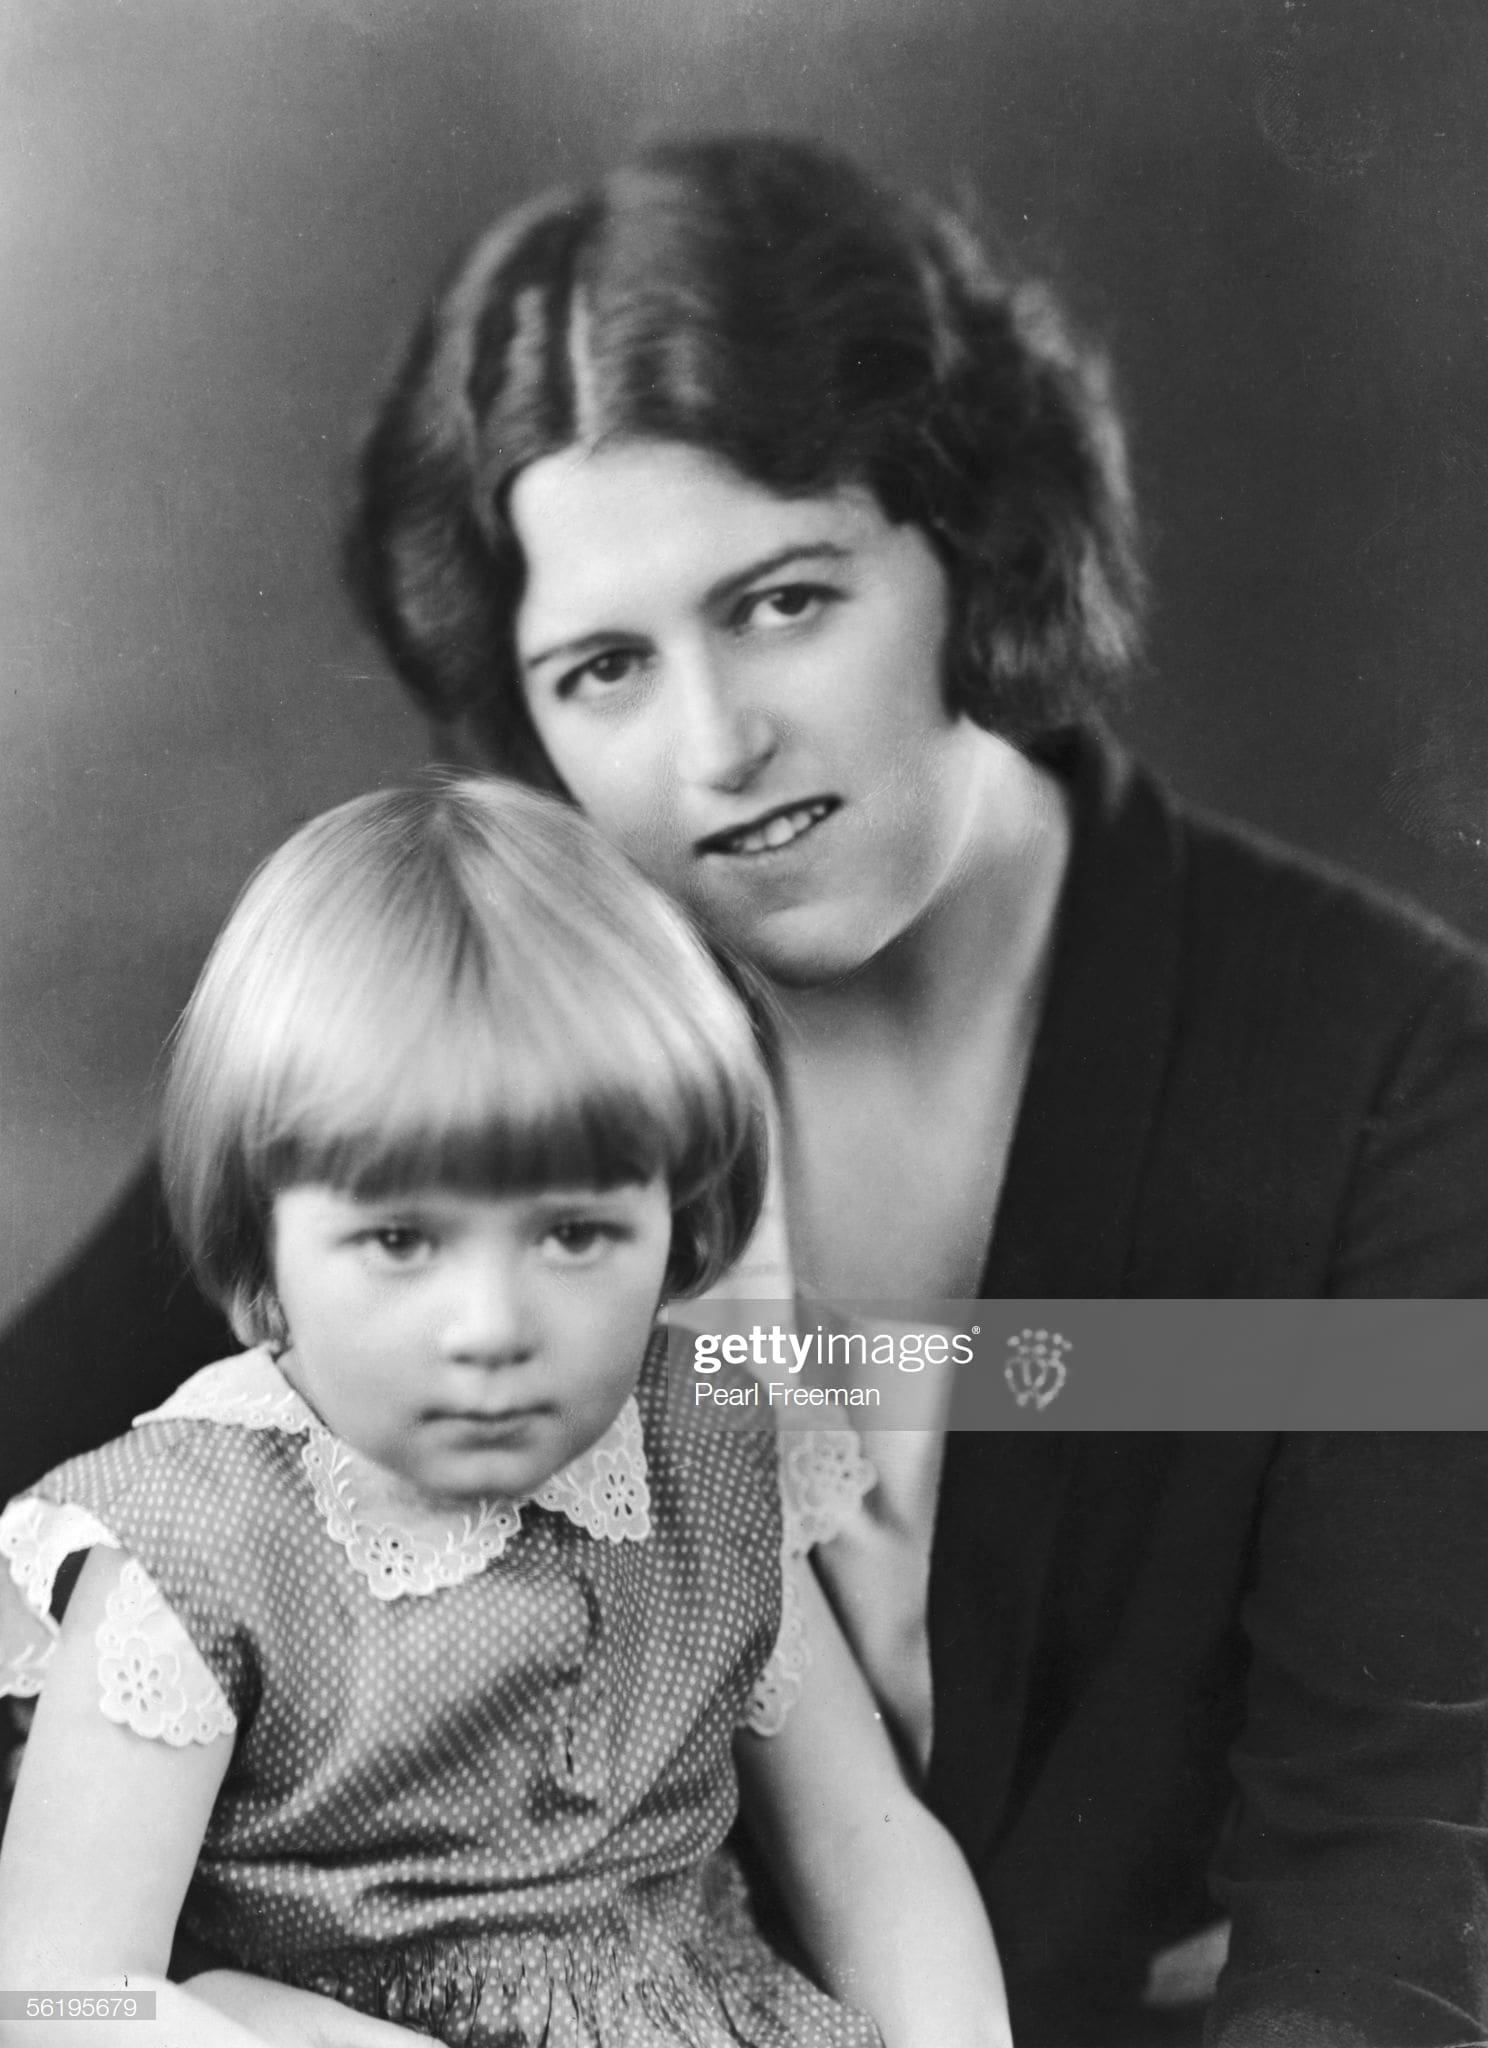 Helen de Guerry Simpson and her daughter Clemence, named after her sometime writing partner Clemence Dane, c.1925